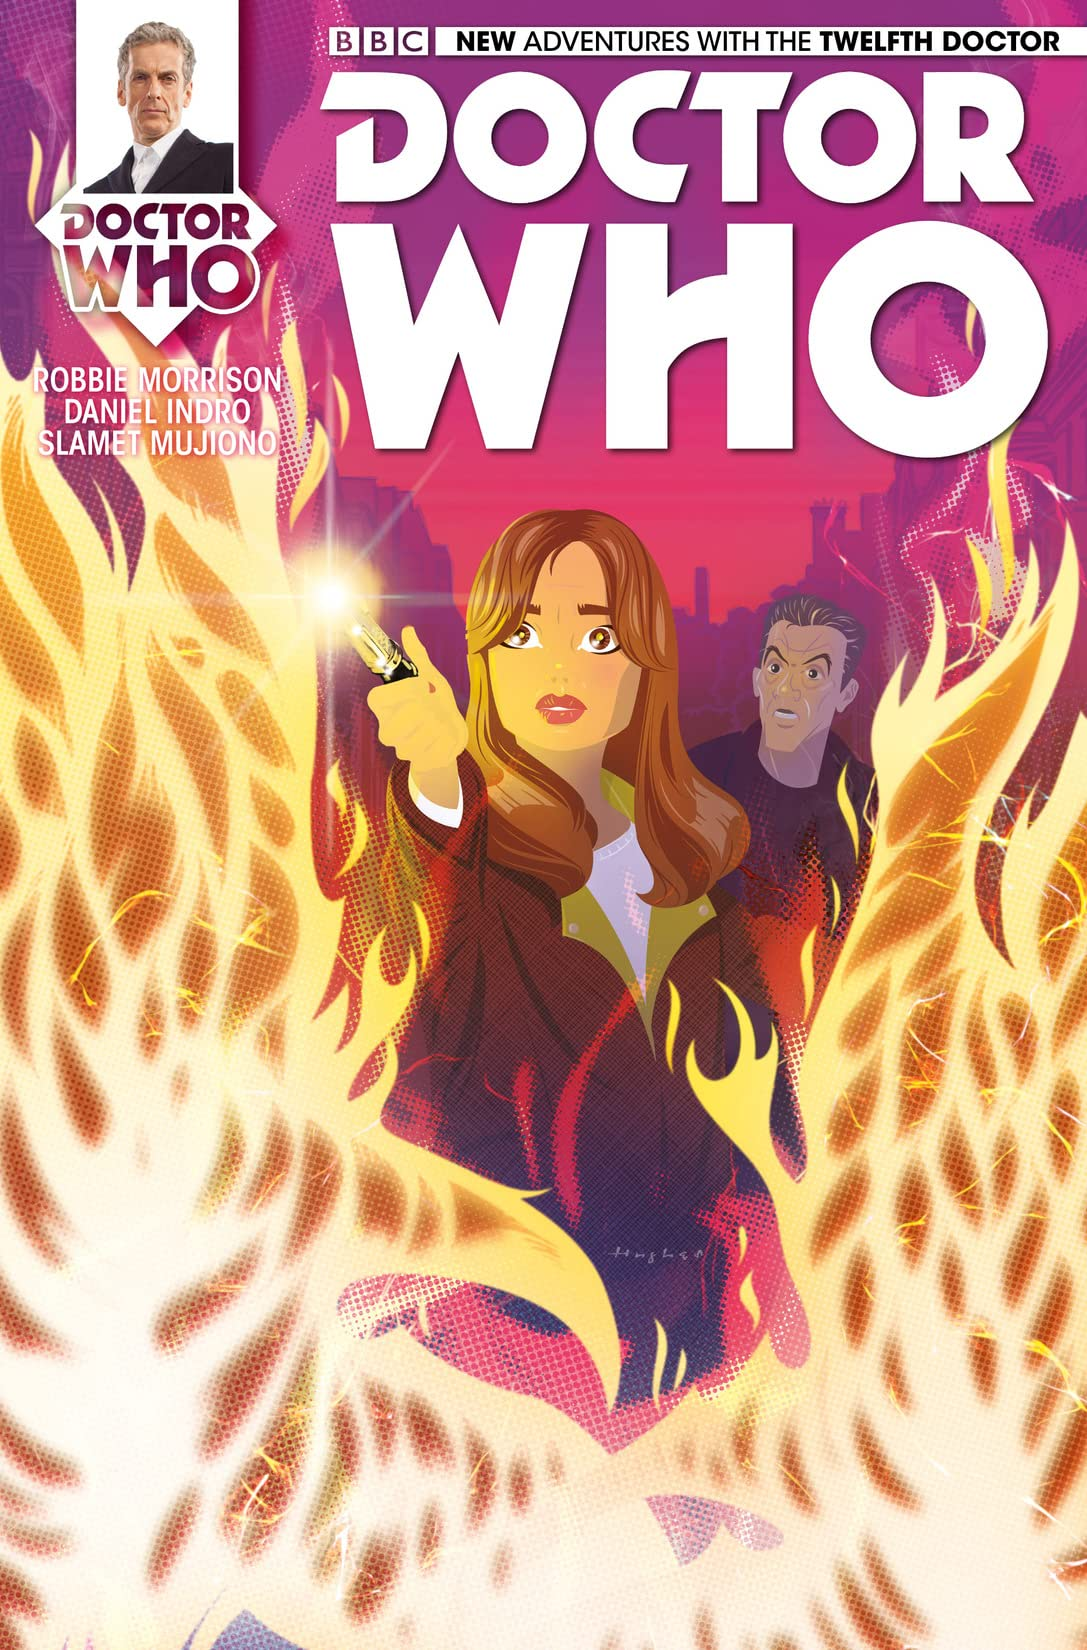 Doctor Who: The Twelfth Doctor #12